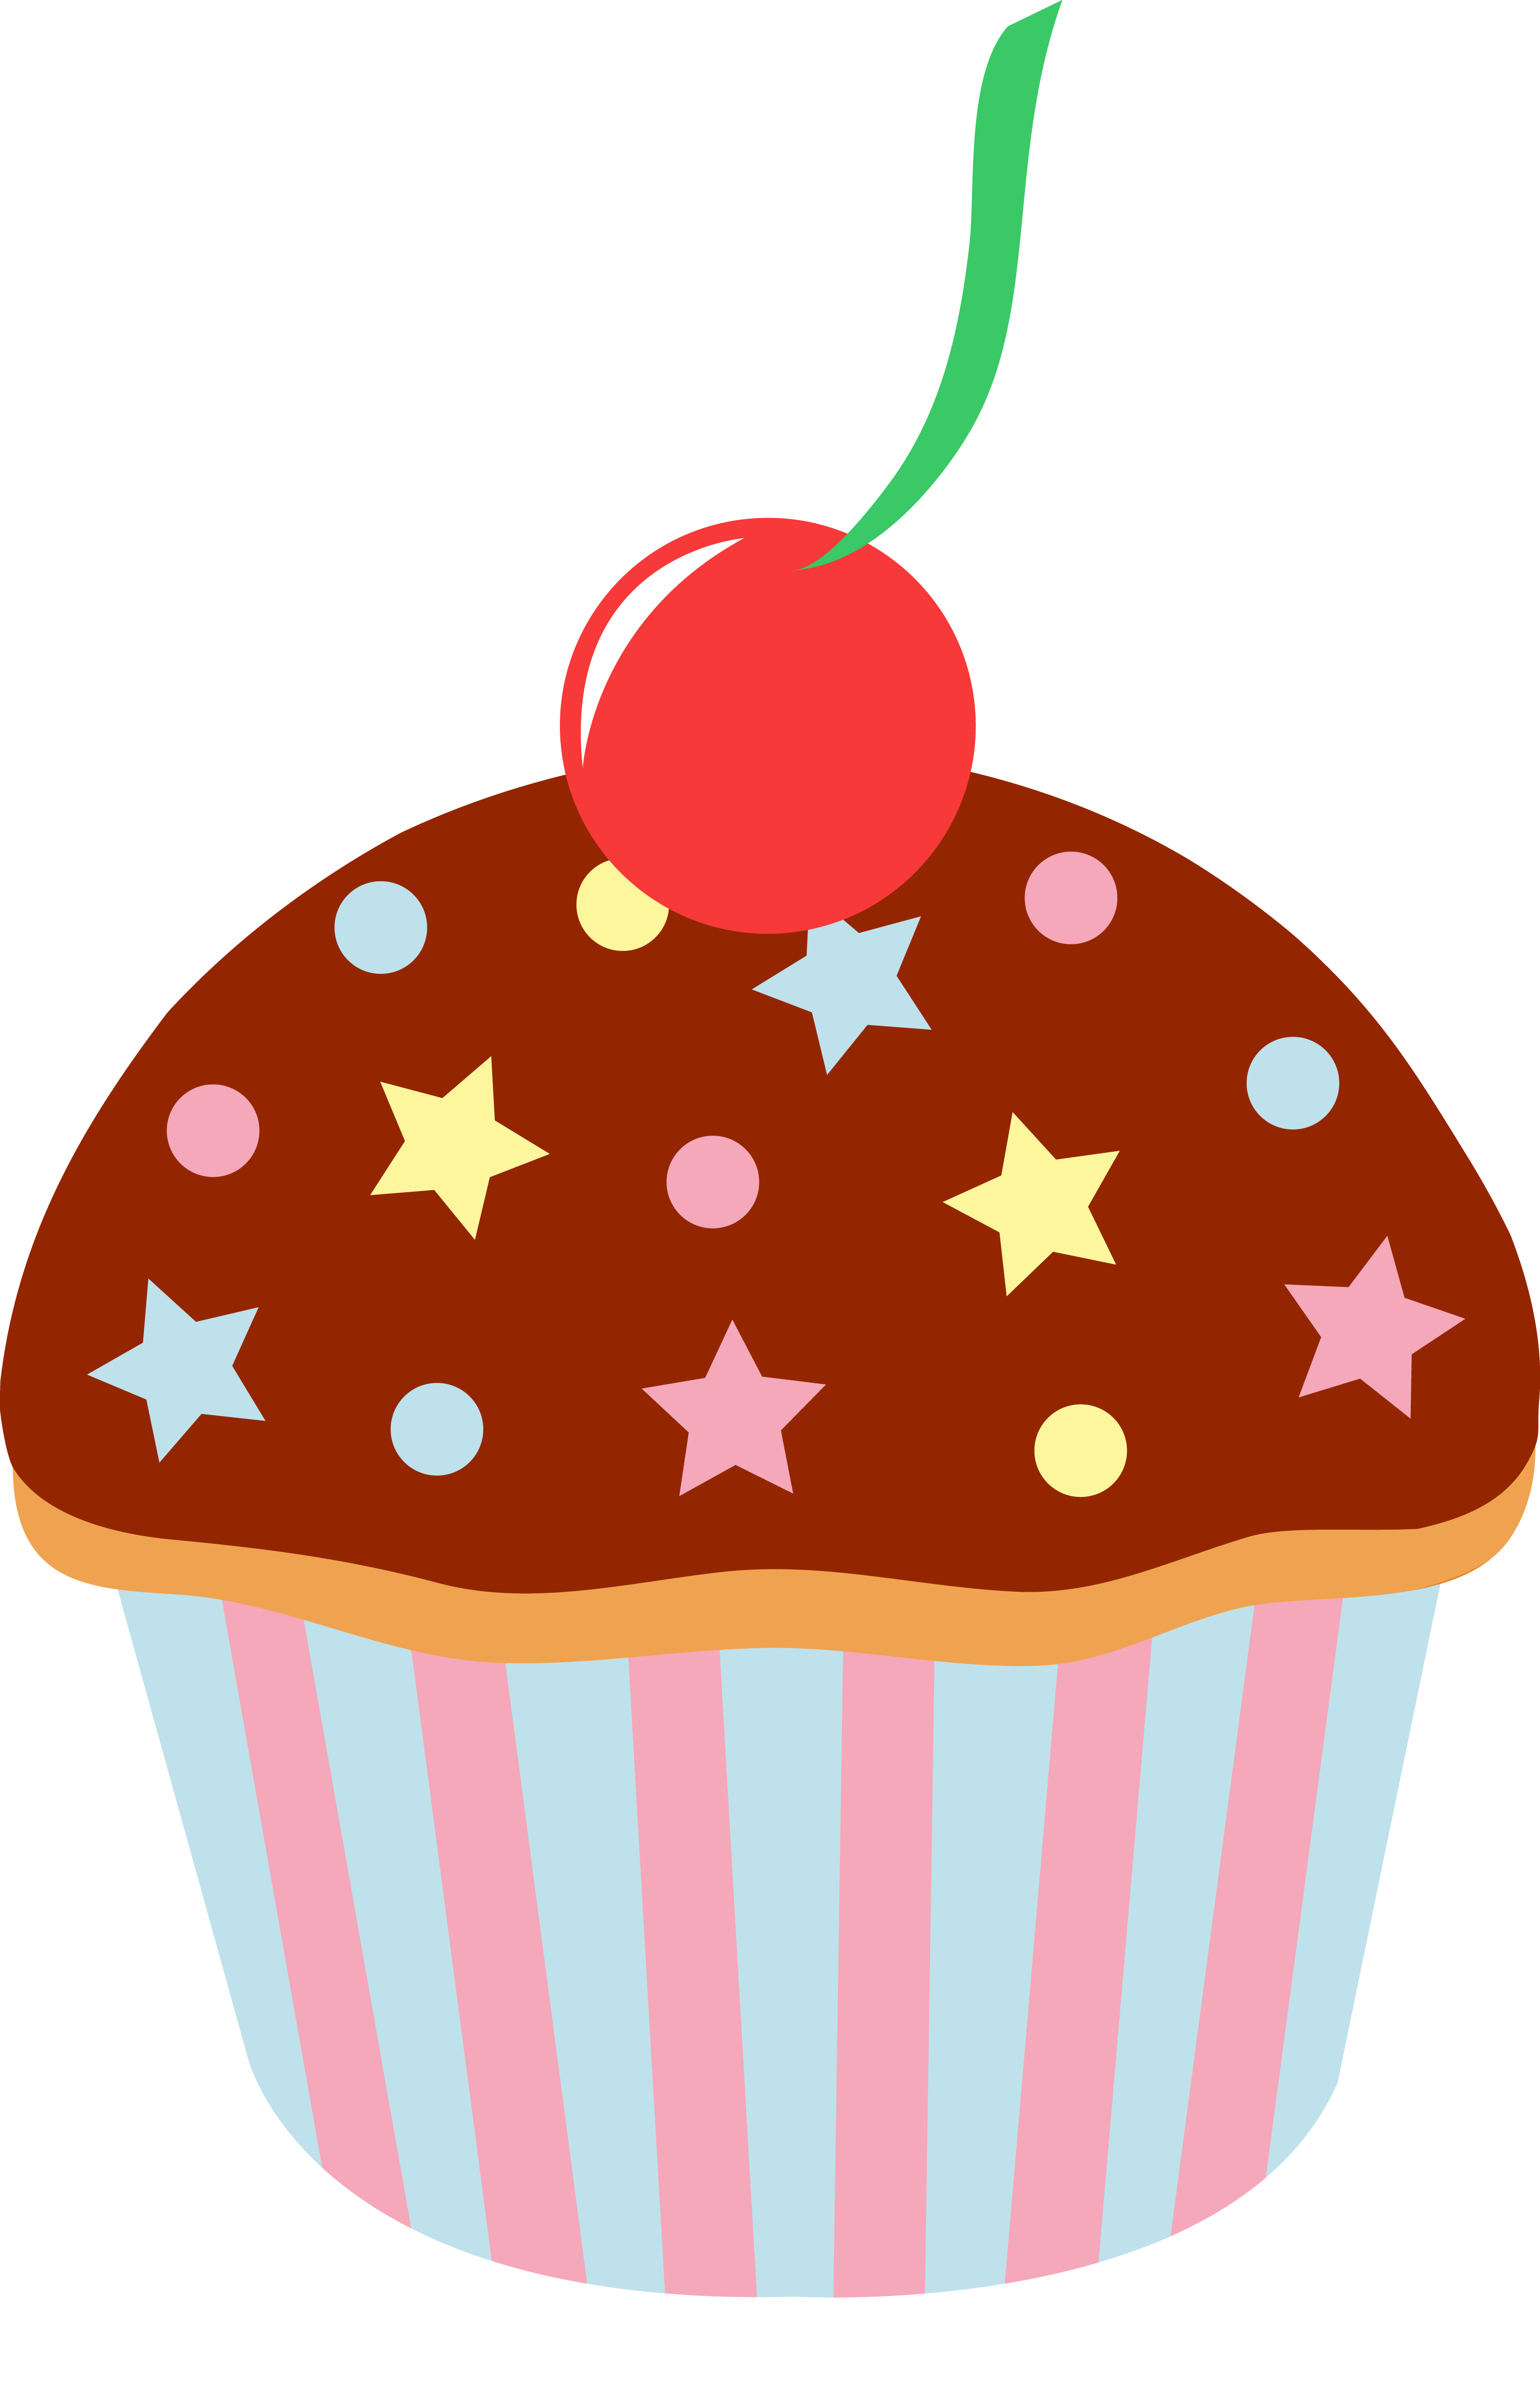 Bing clipart cupcake. Come prepared to face